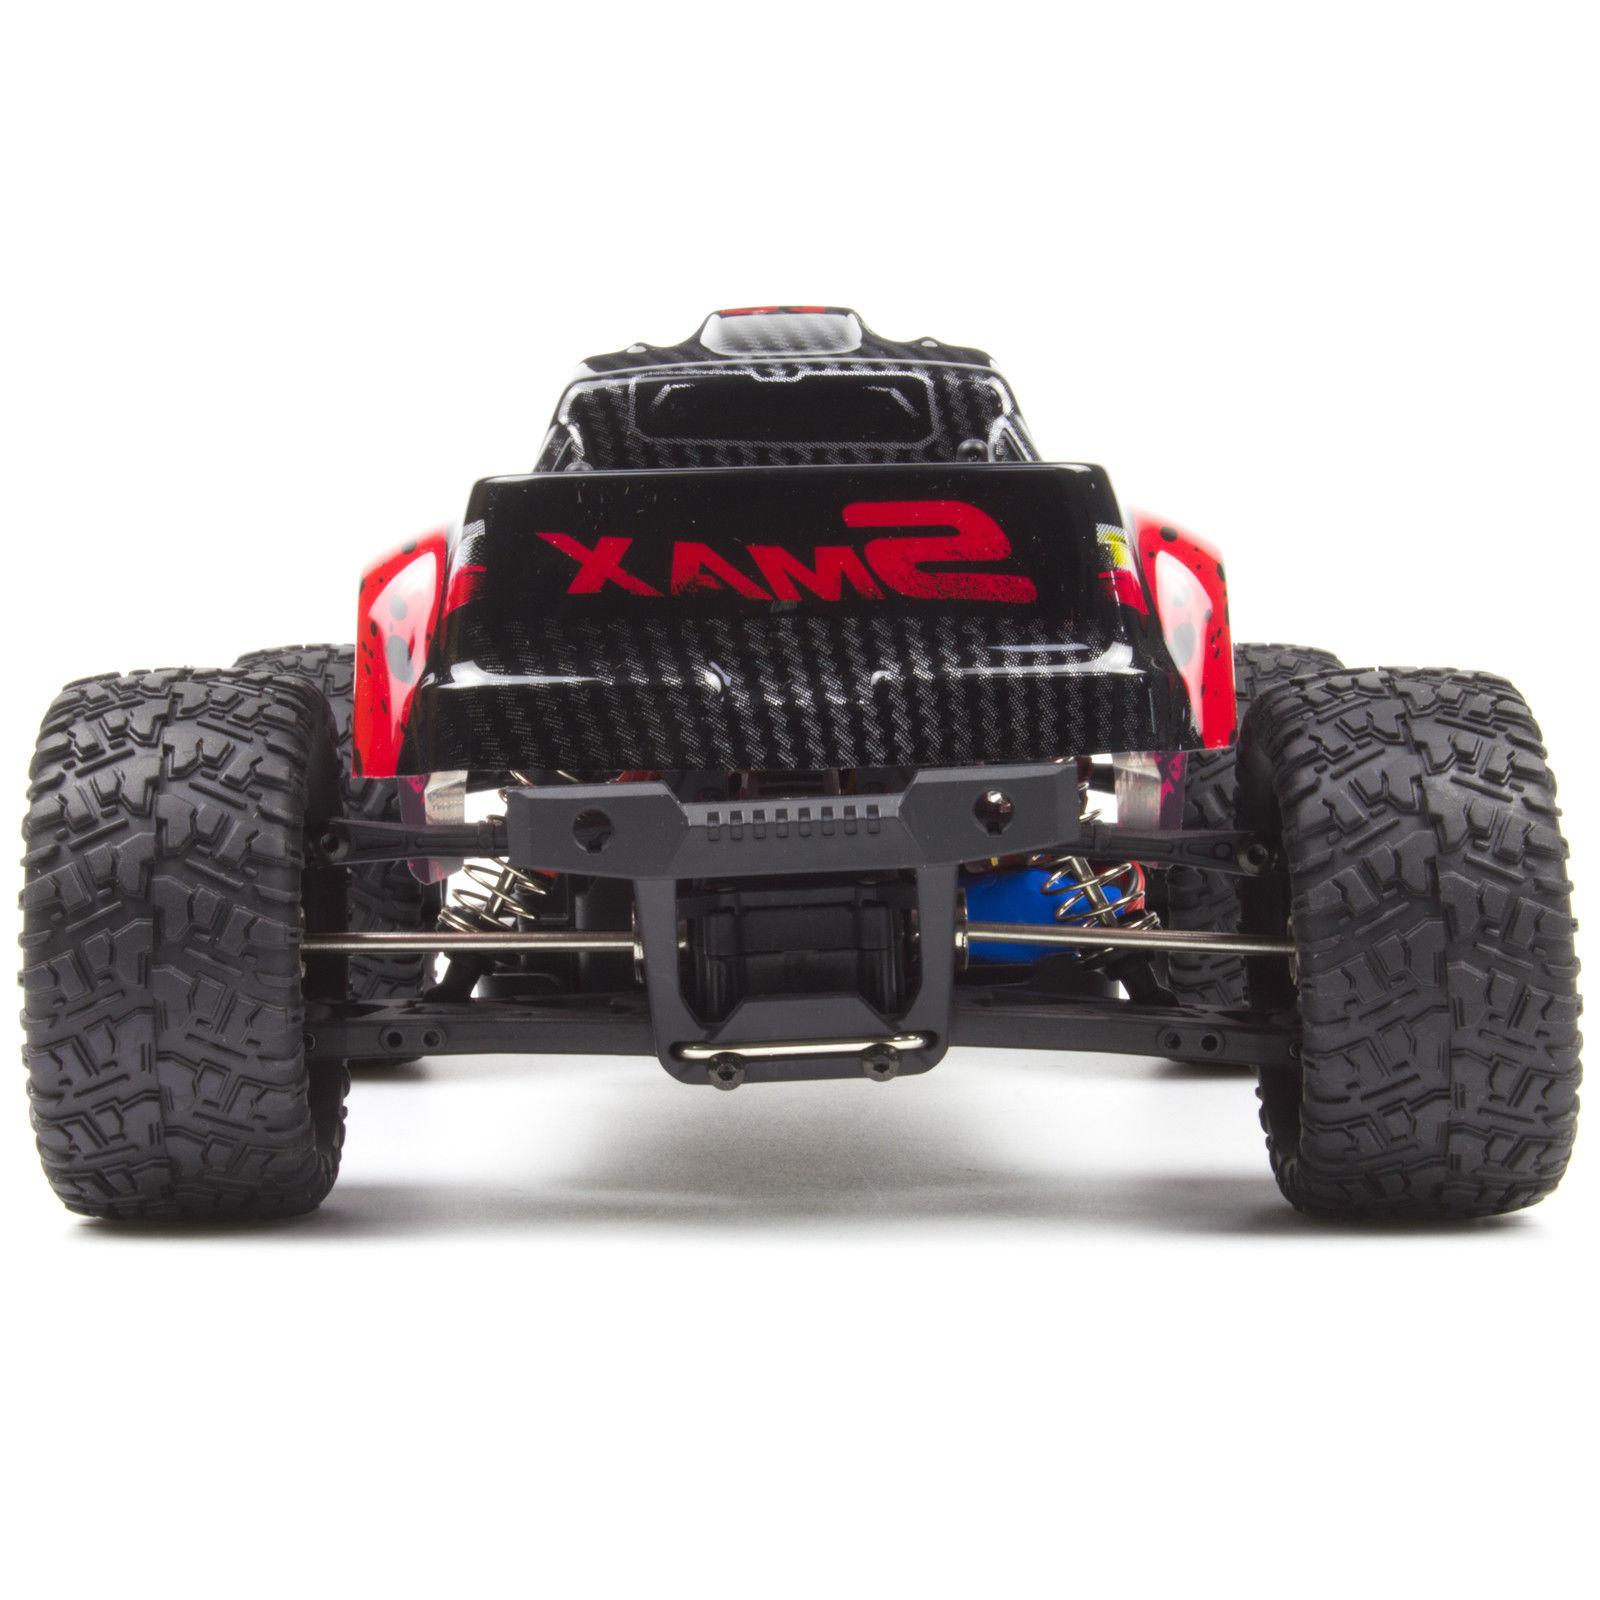 REMO 1/16 RC Monster Truck 2.4Ghz Bushed Red